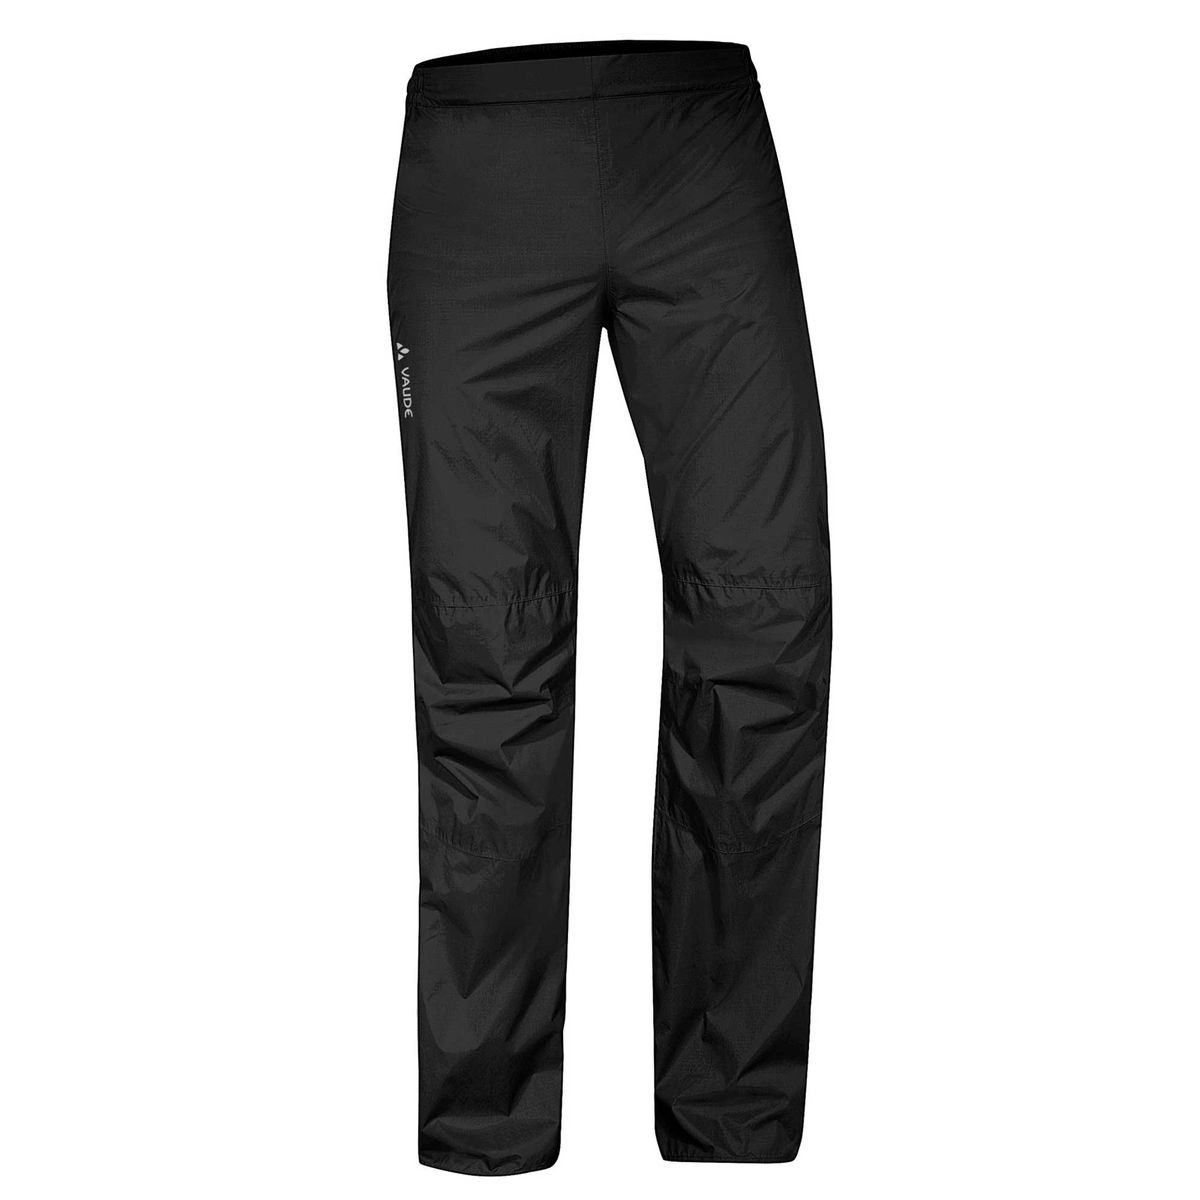 DROP PANTS II – long inseam –